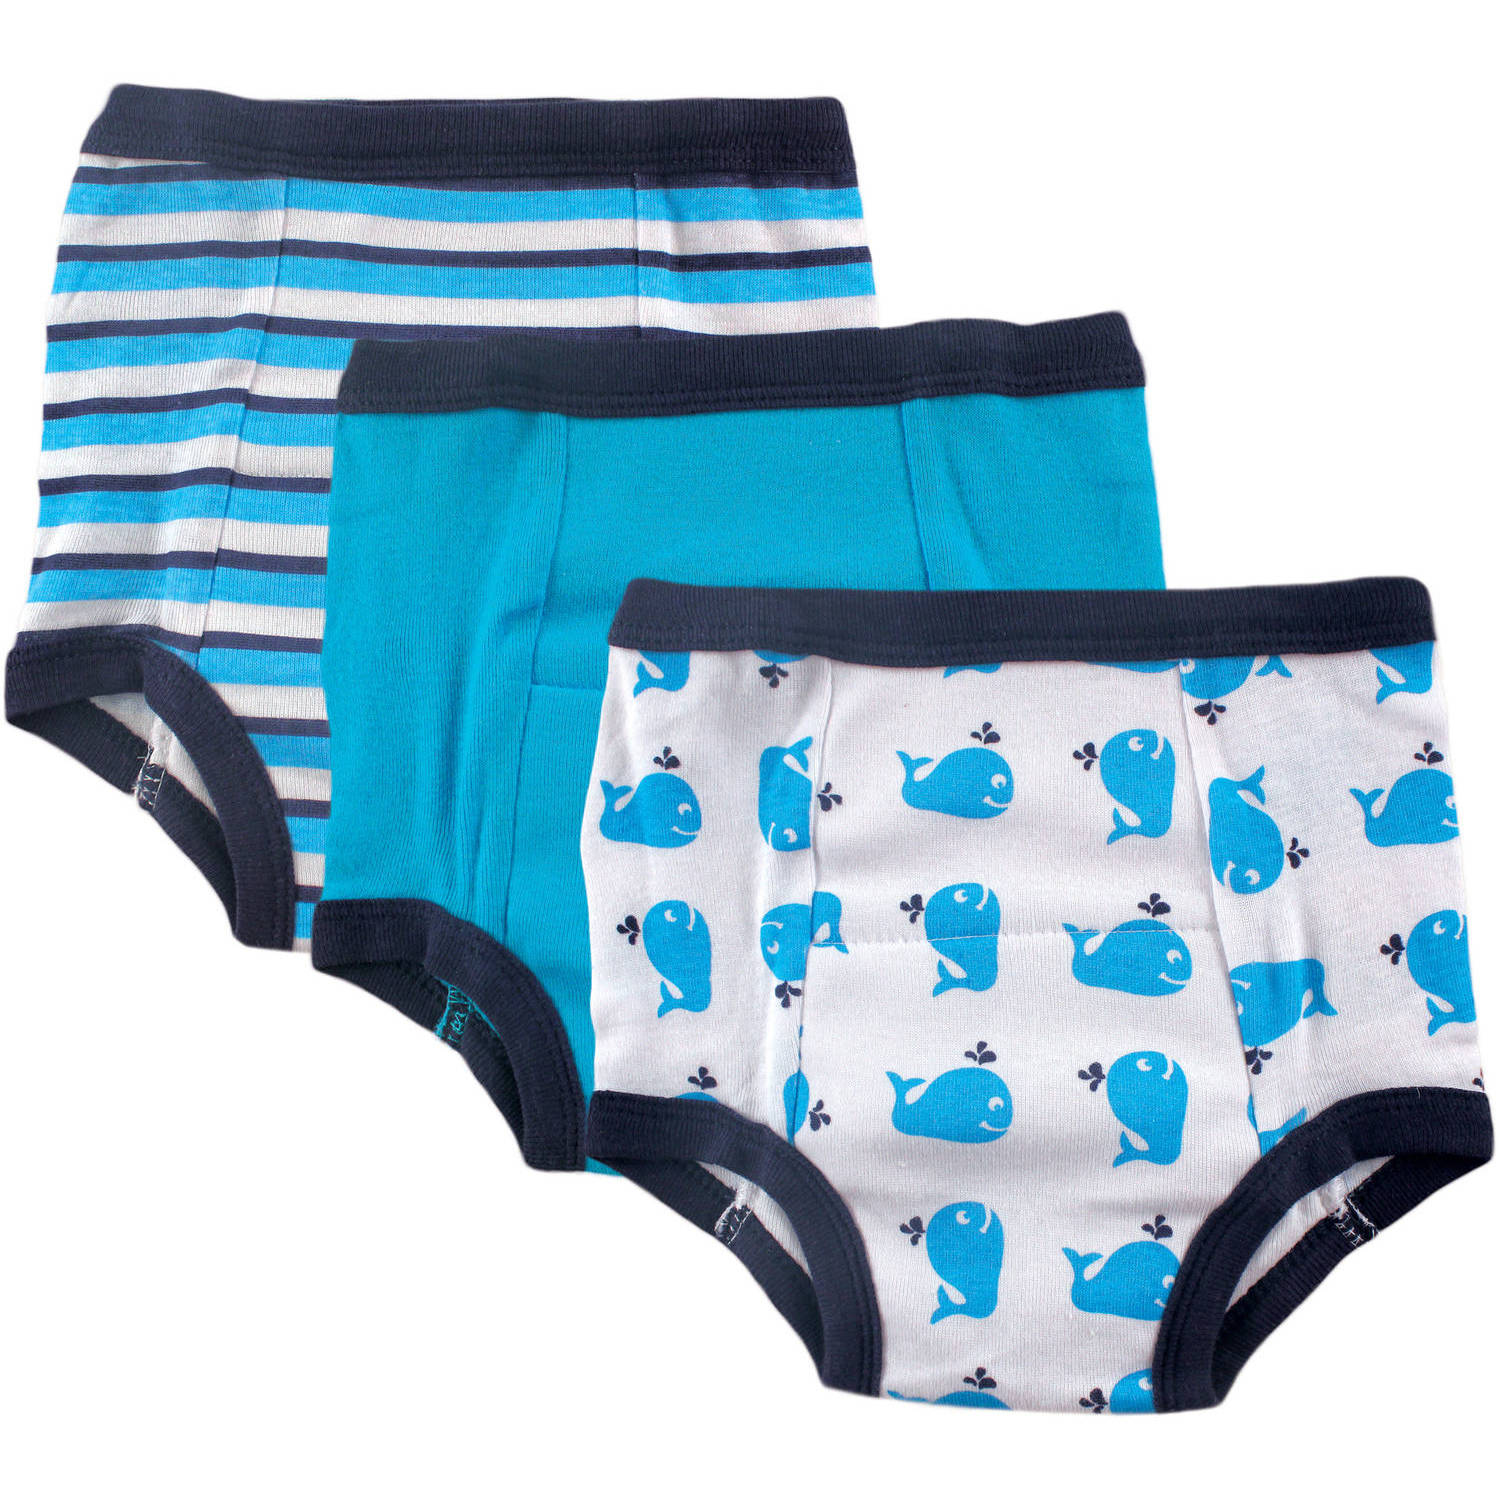 Luvable Friends Baby Boy and Girl Training Pants, 3 Pack